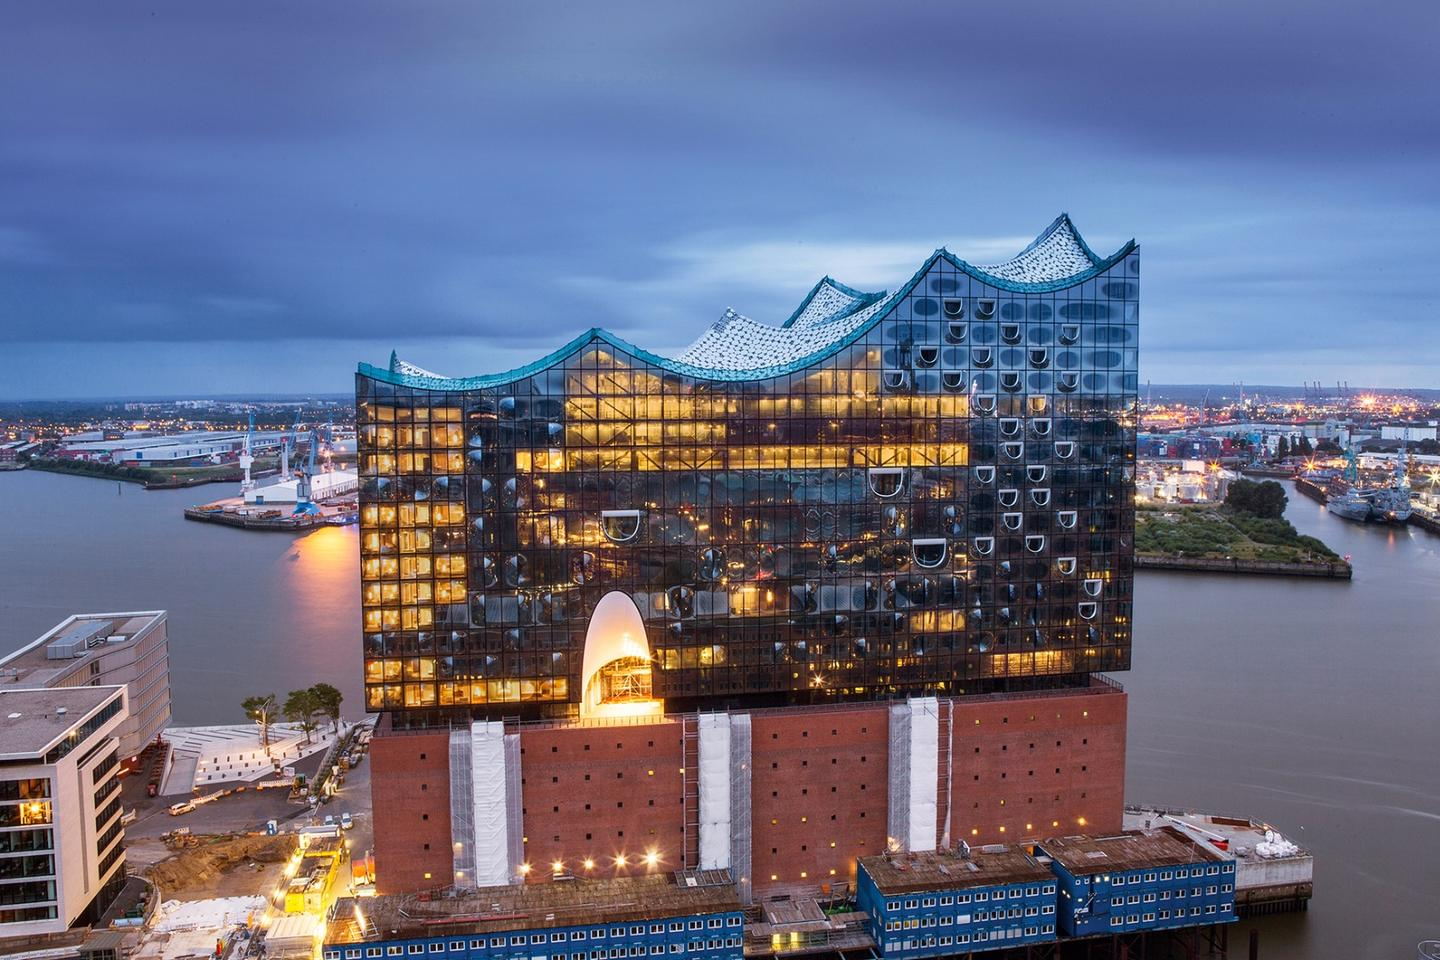 The Elbphilharmonie is located on the banks of the river Elbe in the HafenCity quarter of the Hamburg-Mitte district